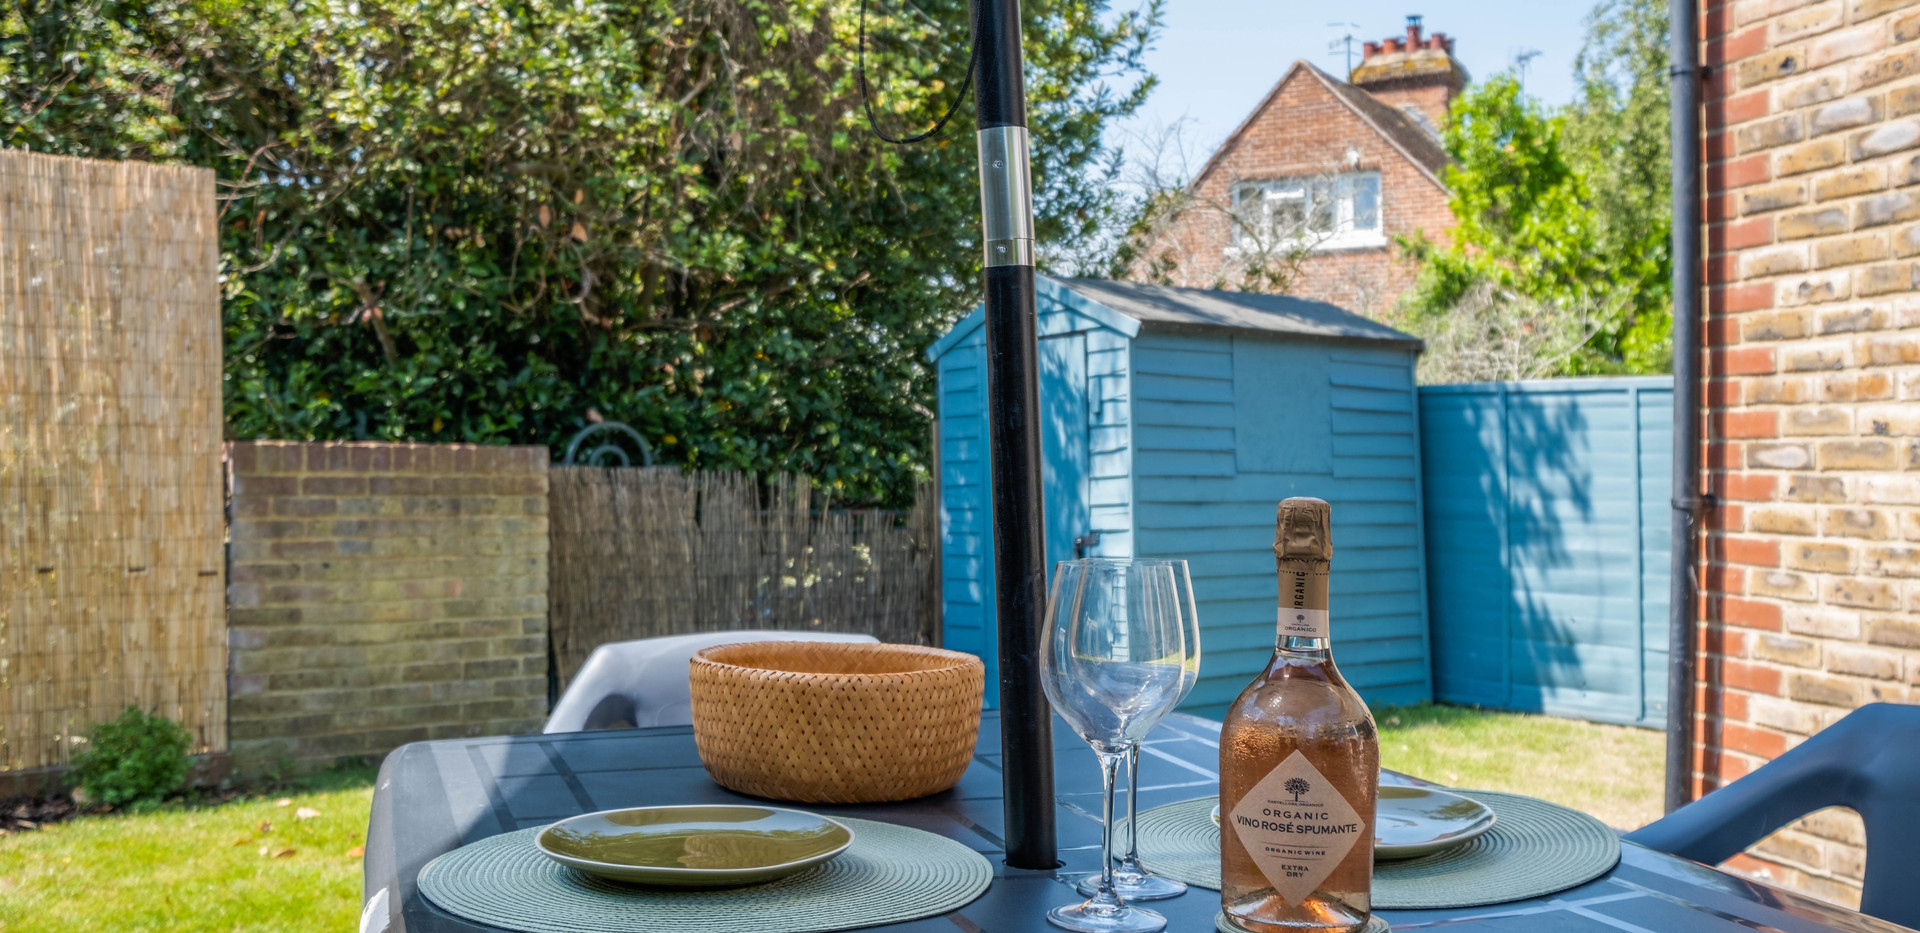 Private, south-facing garden with outdoor dining